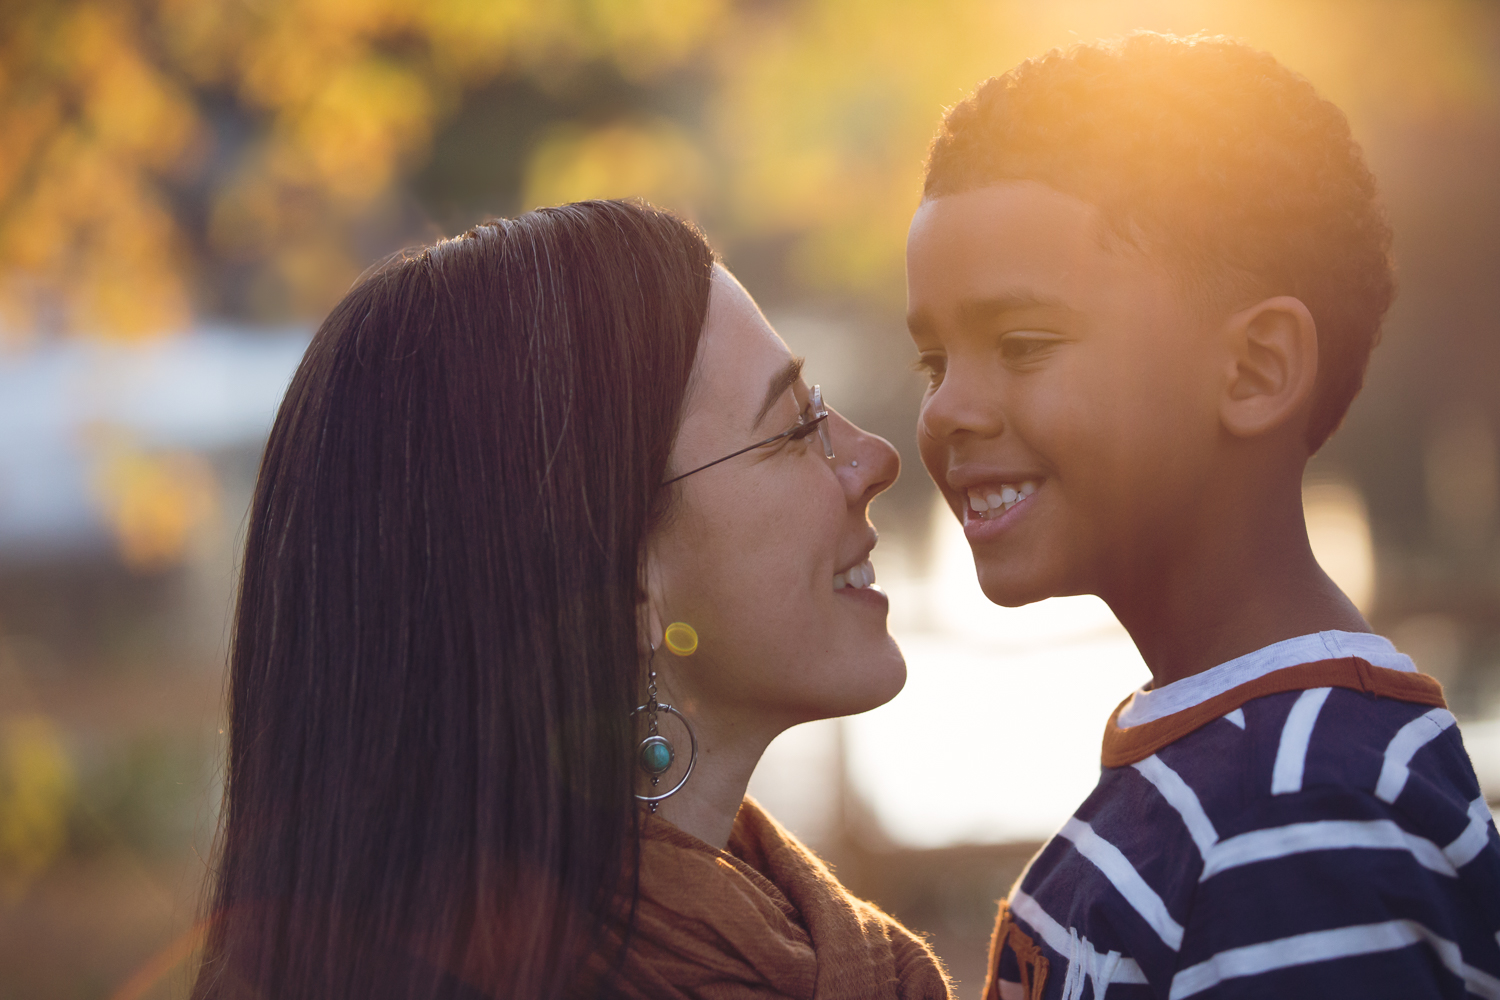 Cute close up portrait of a mom and her son in the fall